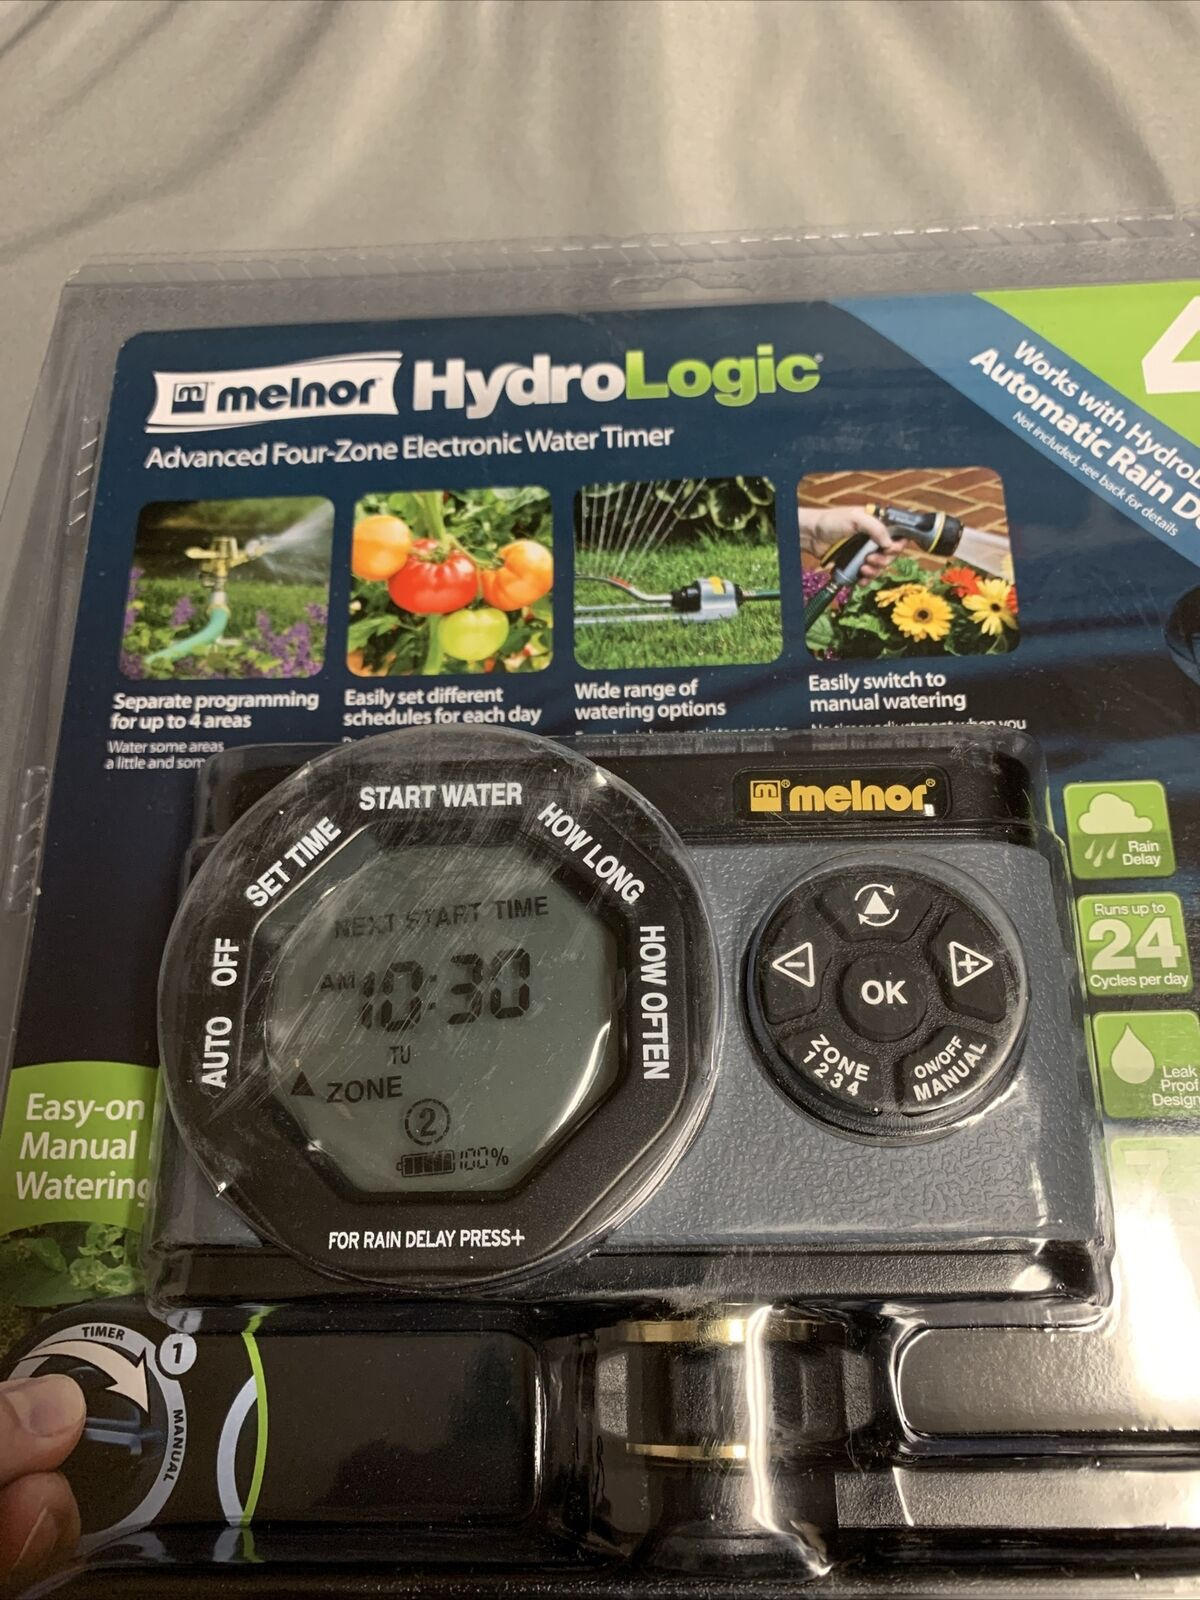 Melnor HydroLogic 53280 Advanced 4 Four-Zone Electronic Water Timer Easy Program